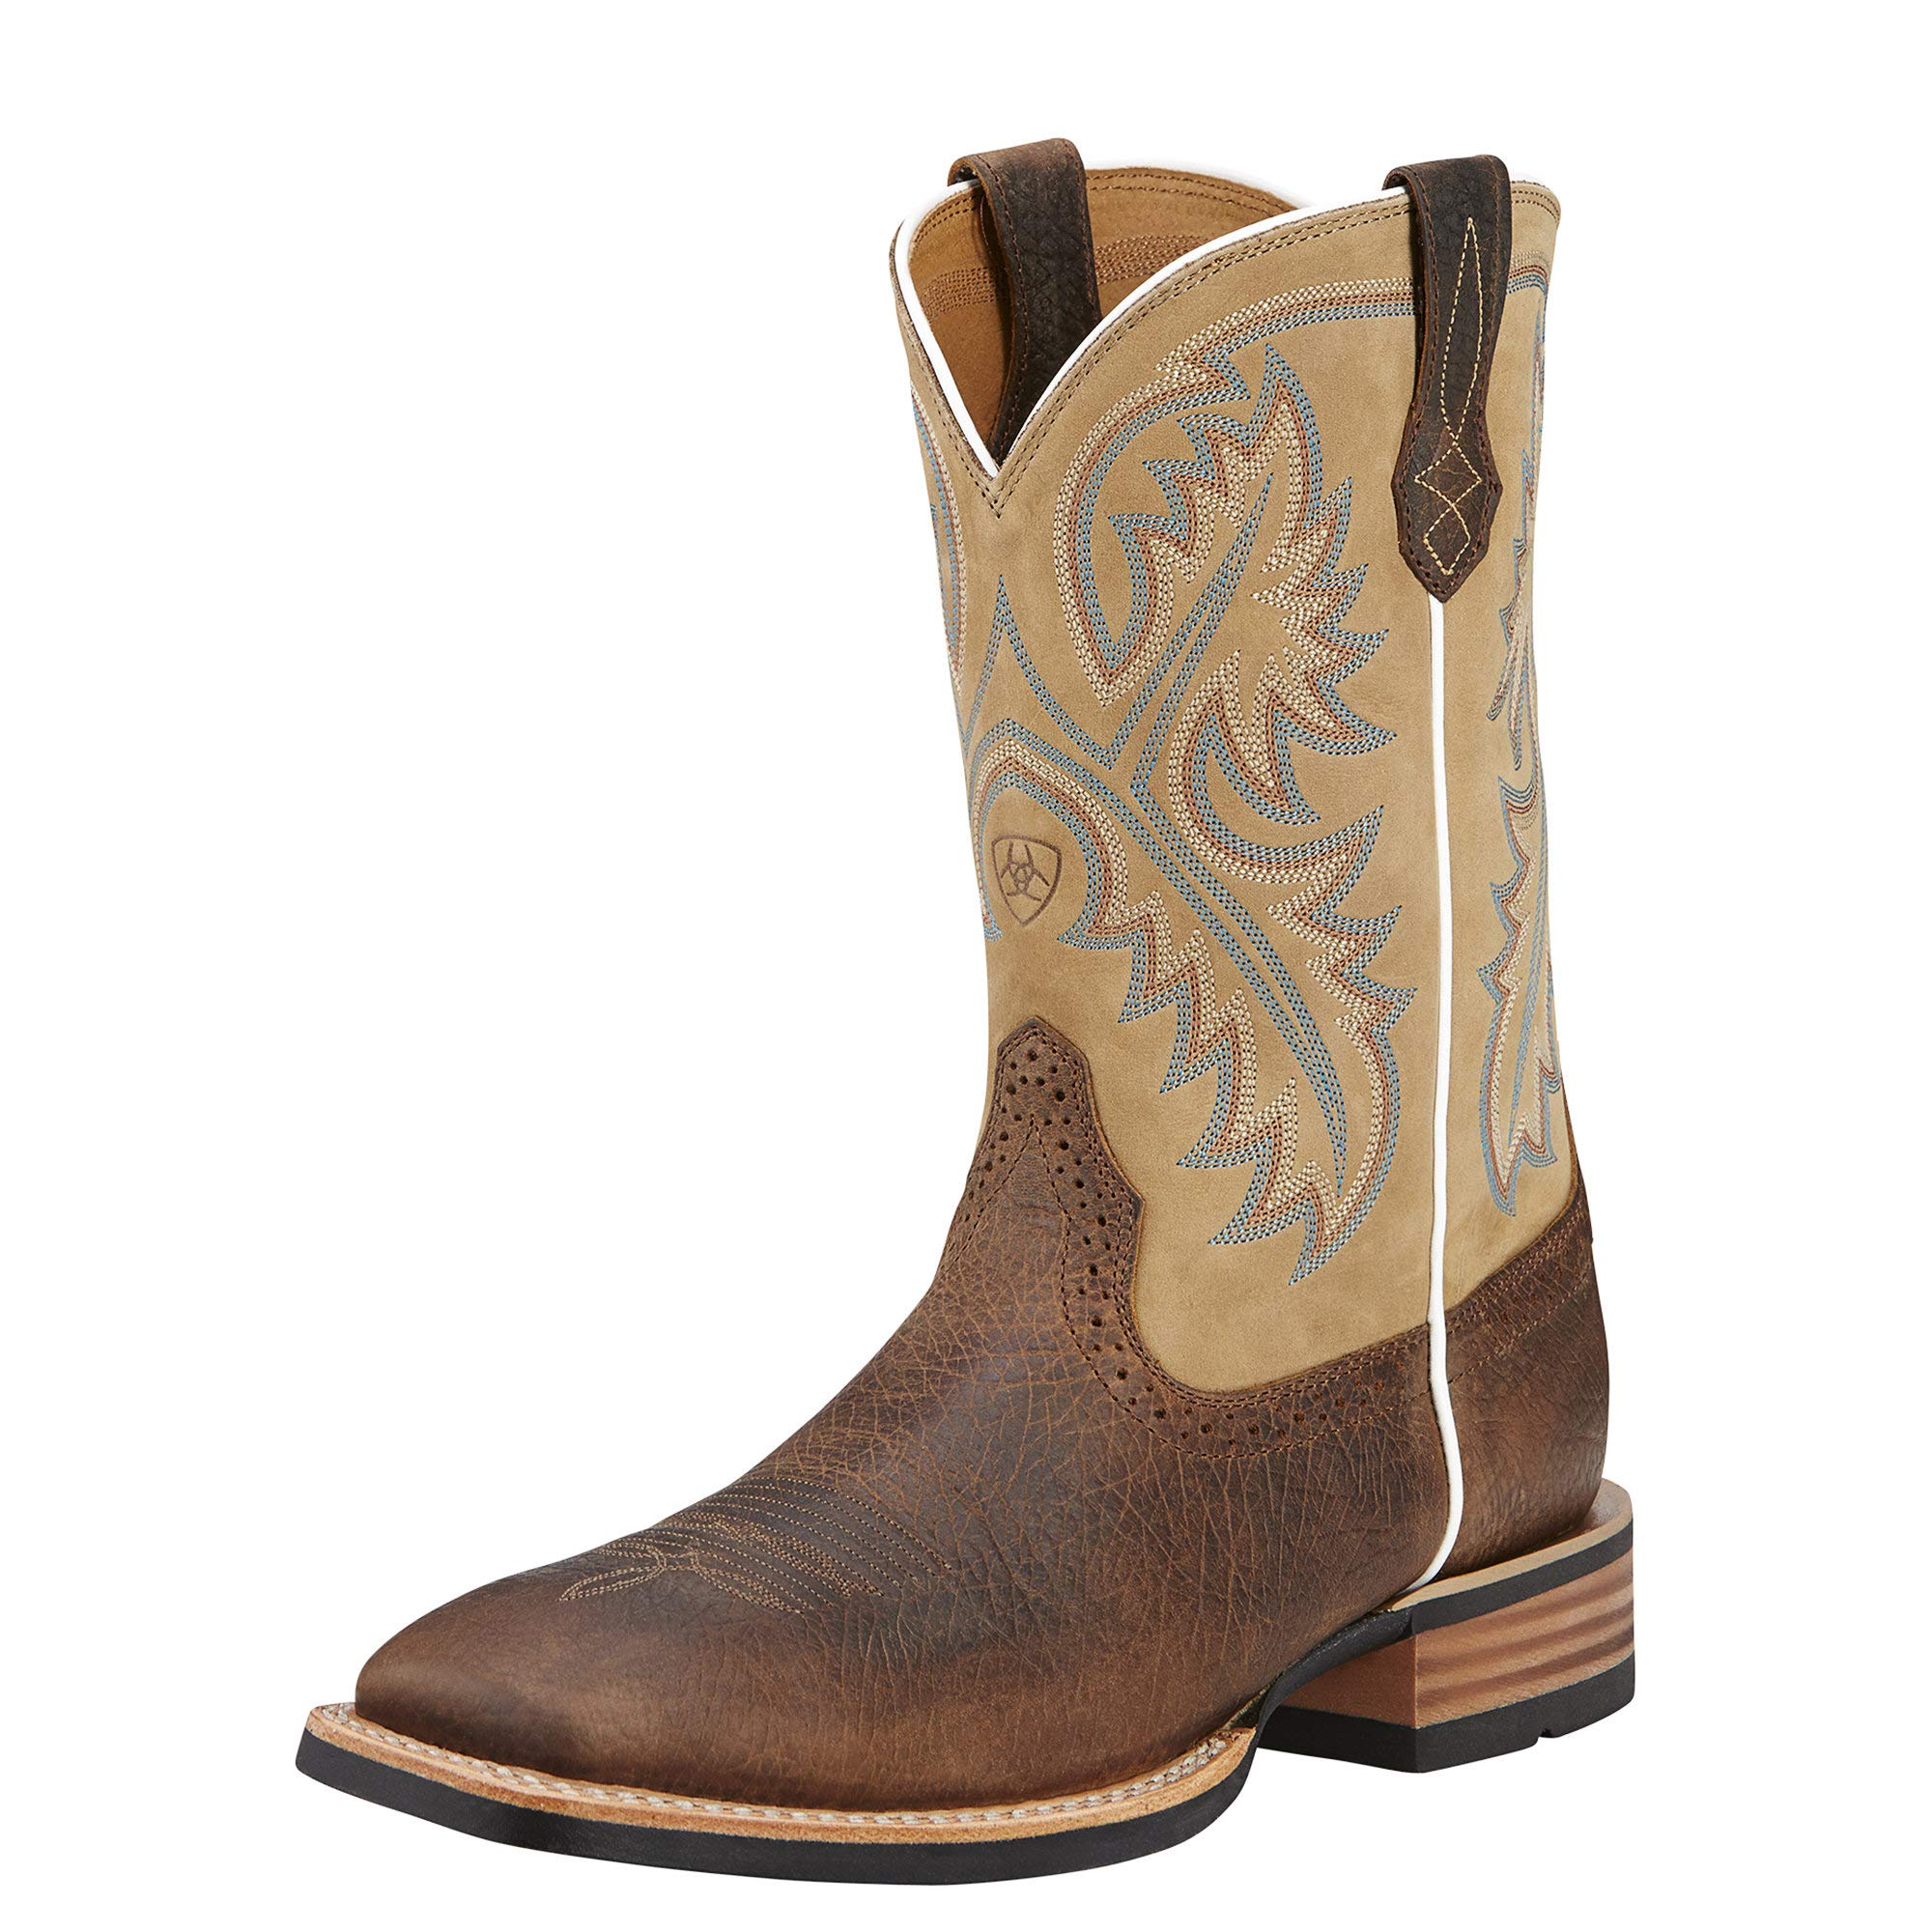 Ariat Men's Quickdraw Western Boot, Tumbled bark/Beige, 13 E US by ARIAT